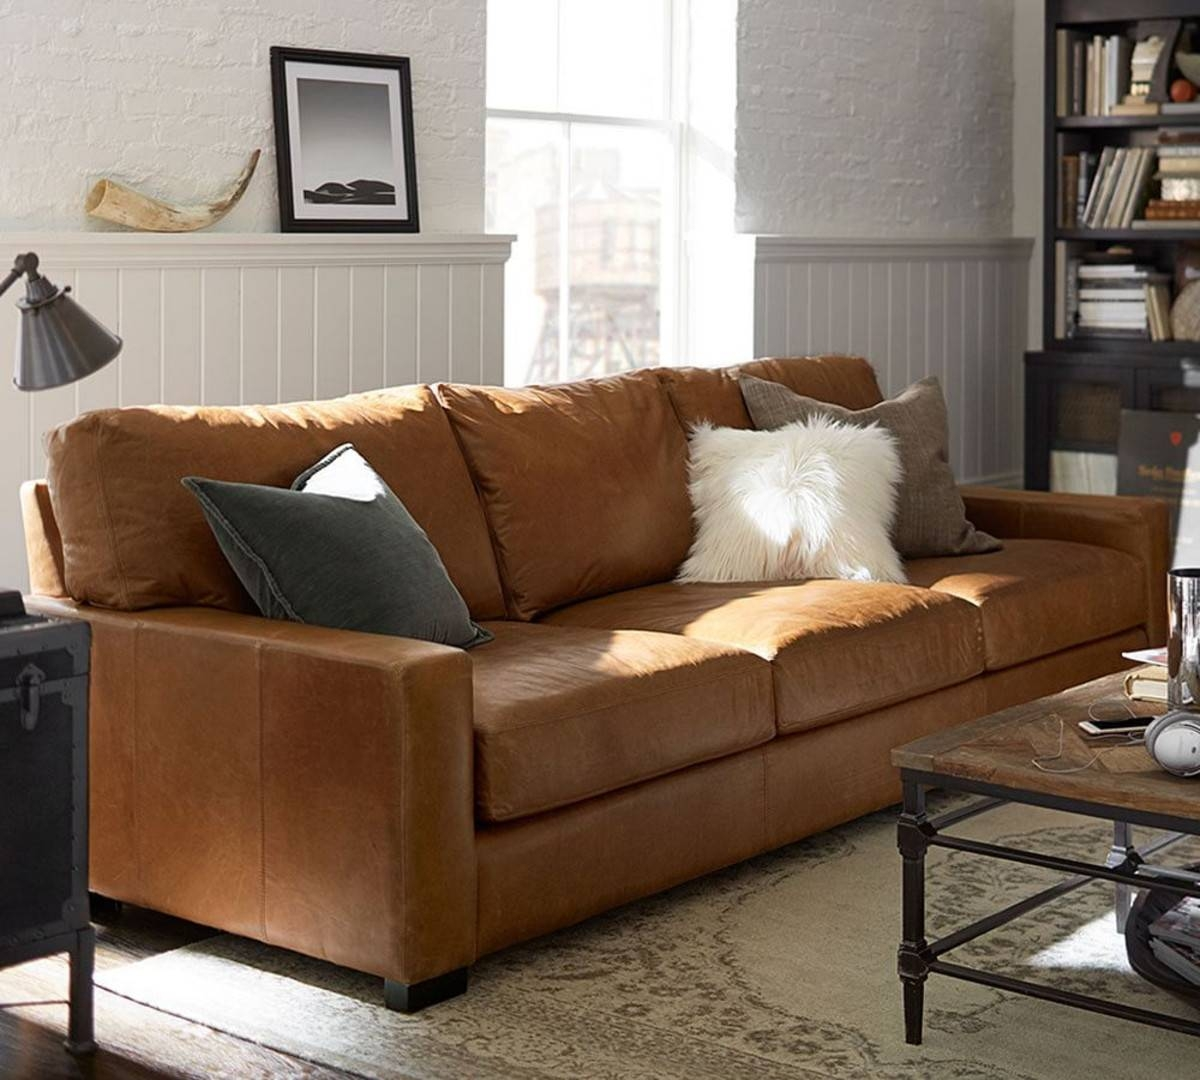 Unique Caramel Leather Sofa 28 On Sofa Room Ideas With Caramel with Caramel Leather Sofas (Image 14 of 15)